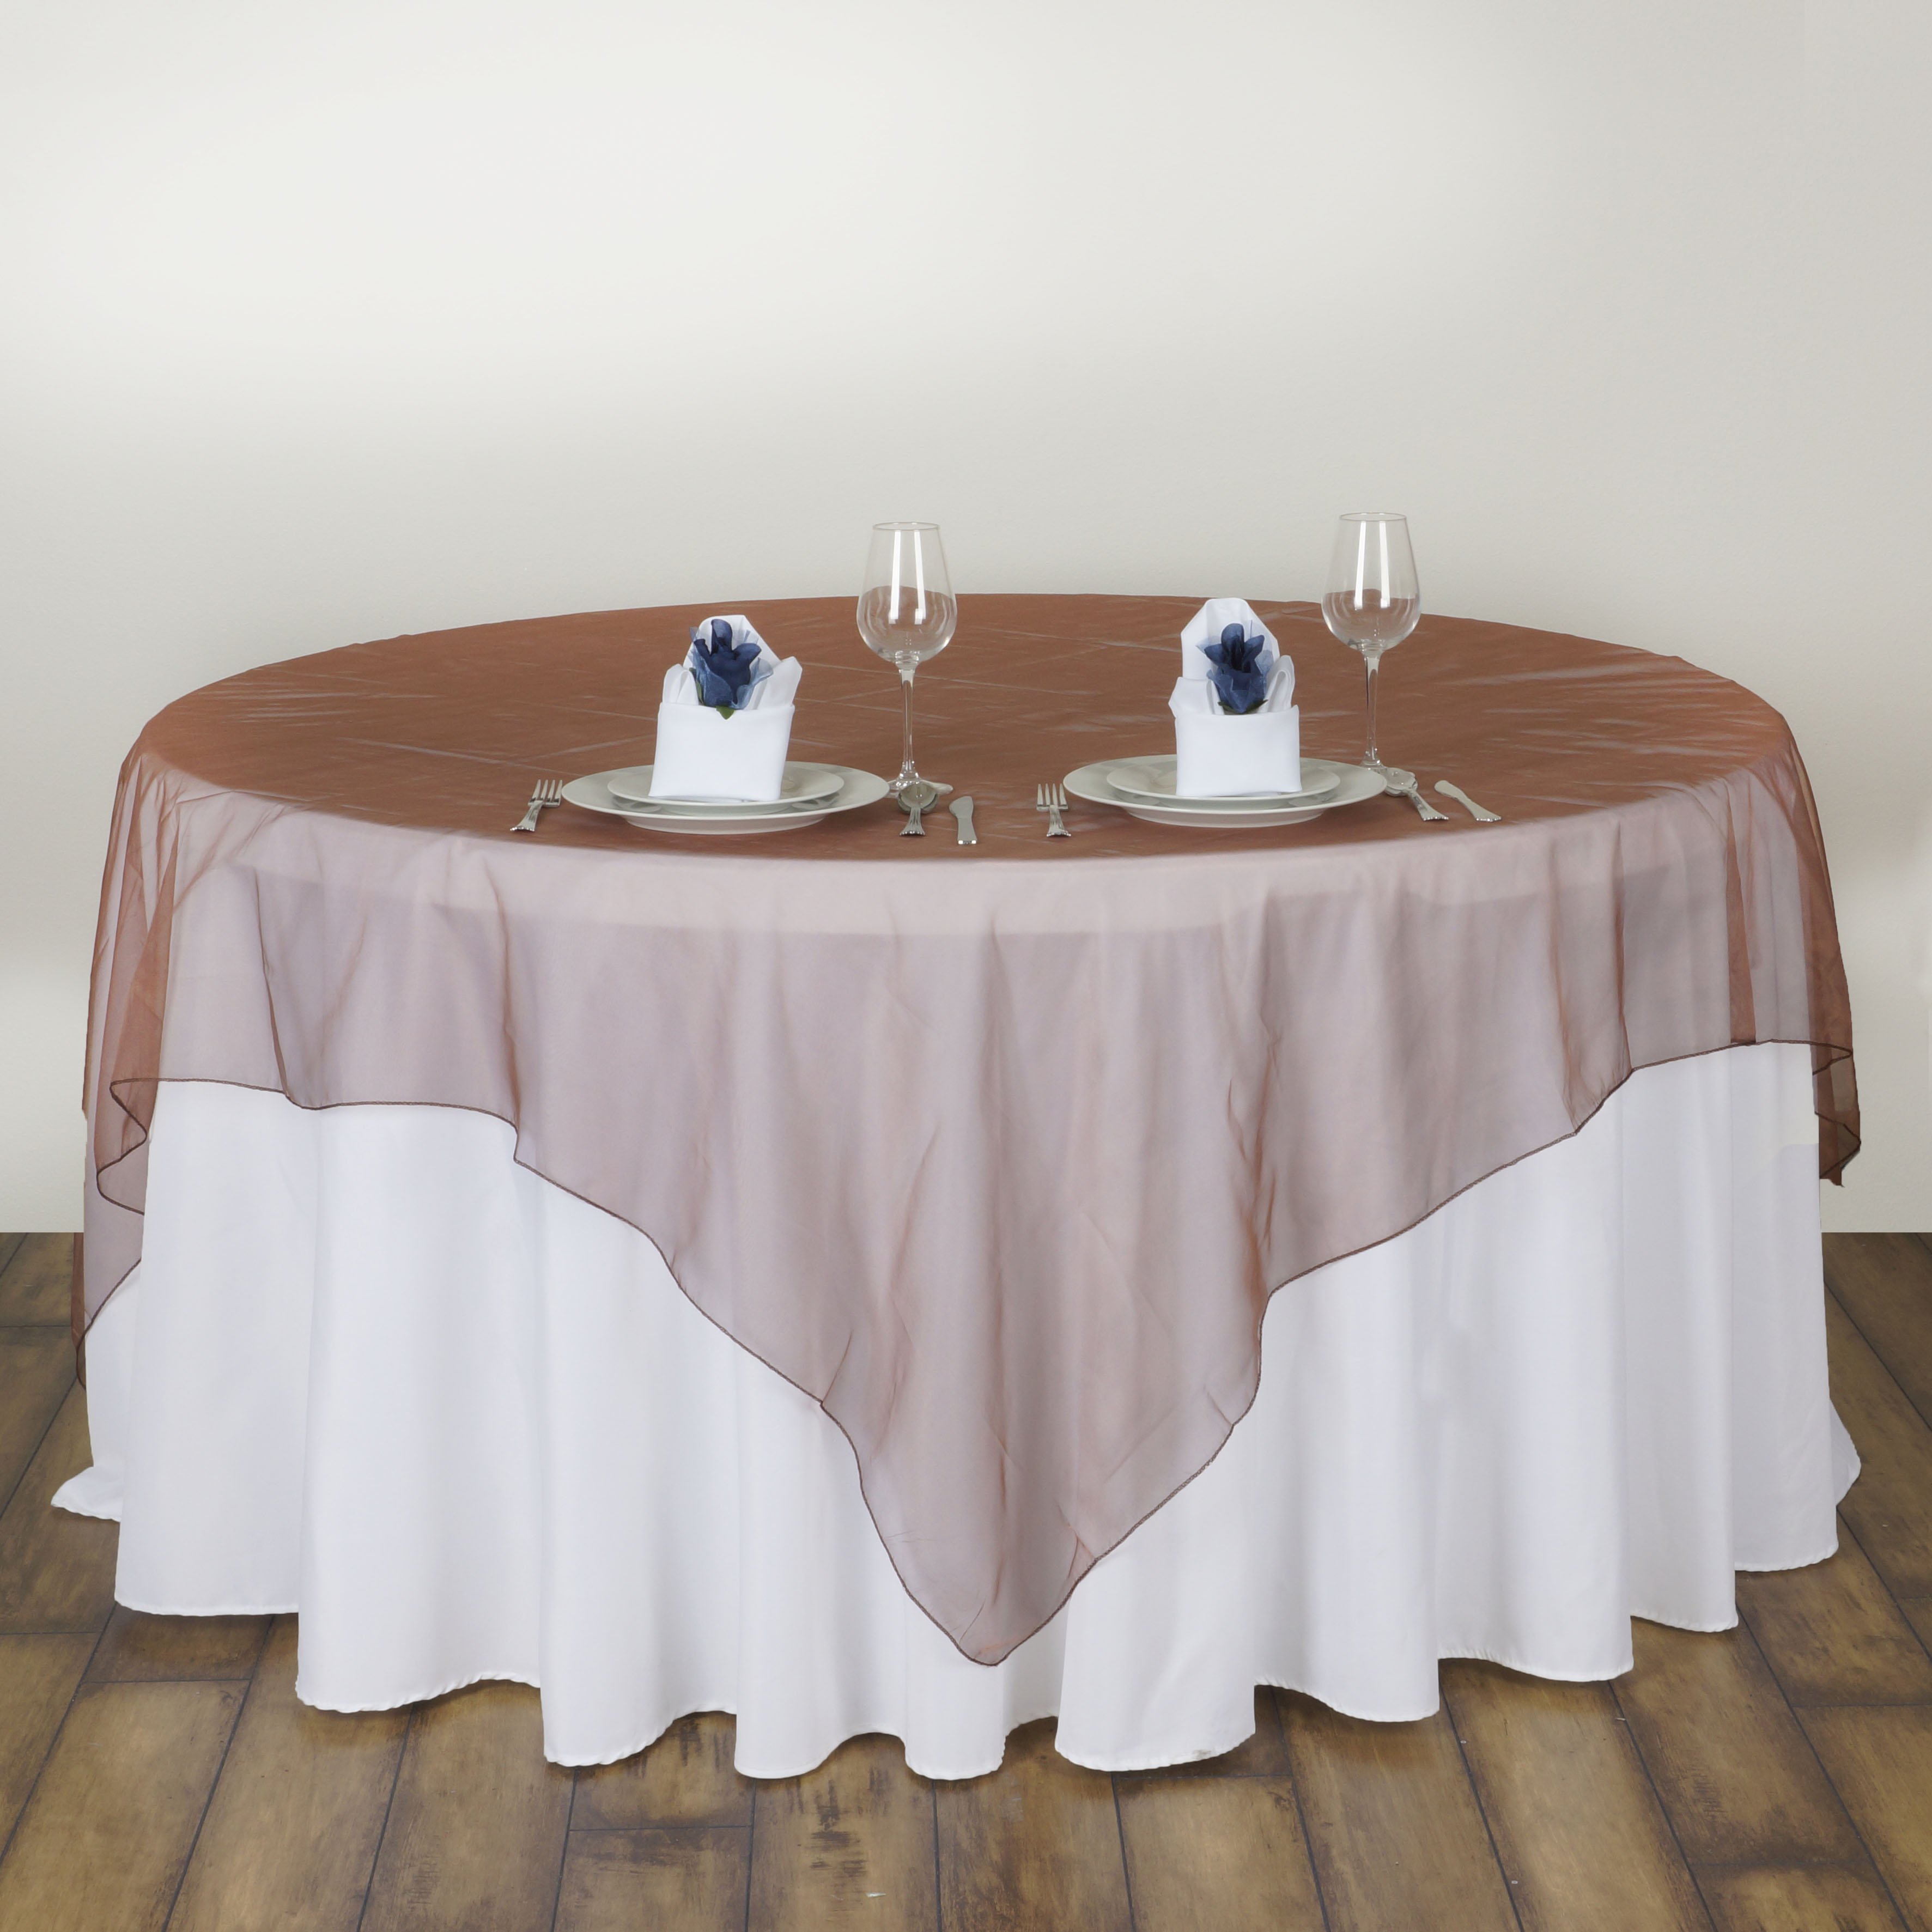 """10 Pc 72x72"""" Sheer Organza Table Overlays Wedding Party. Modern Desks White. Pub Dining Table. Ashley Furniture Dining Tables. White Vanity Desk With Mirror. White Small Computer Desk. Target Furniture Kids-desks. Bathroom Side Table. Men's Drawers"""